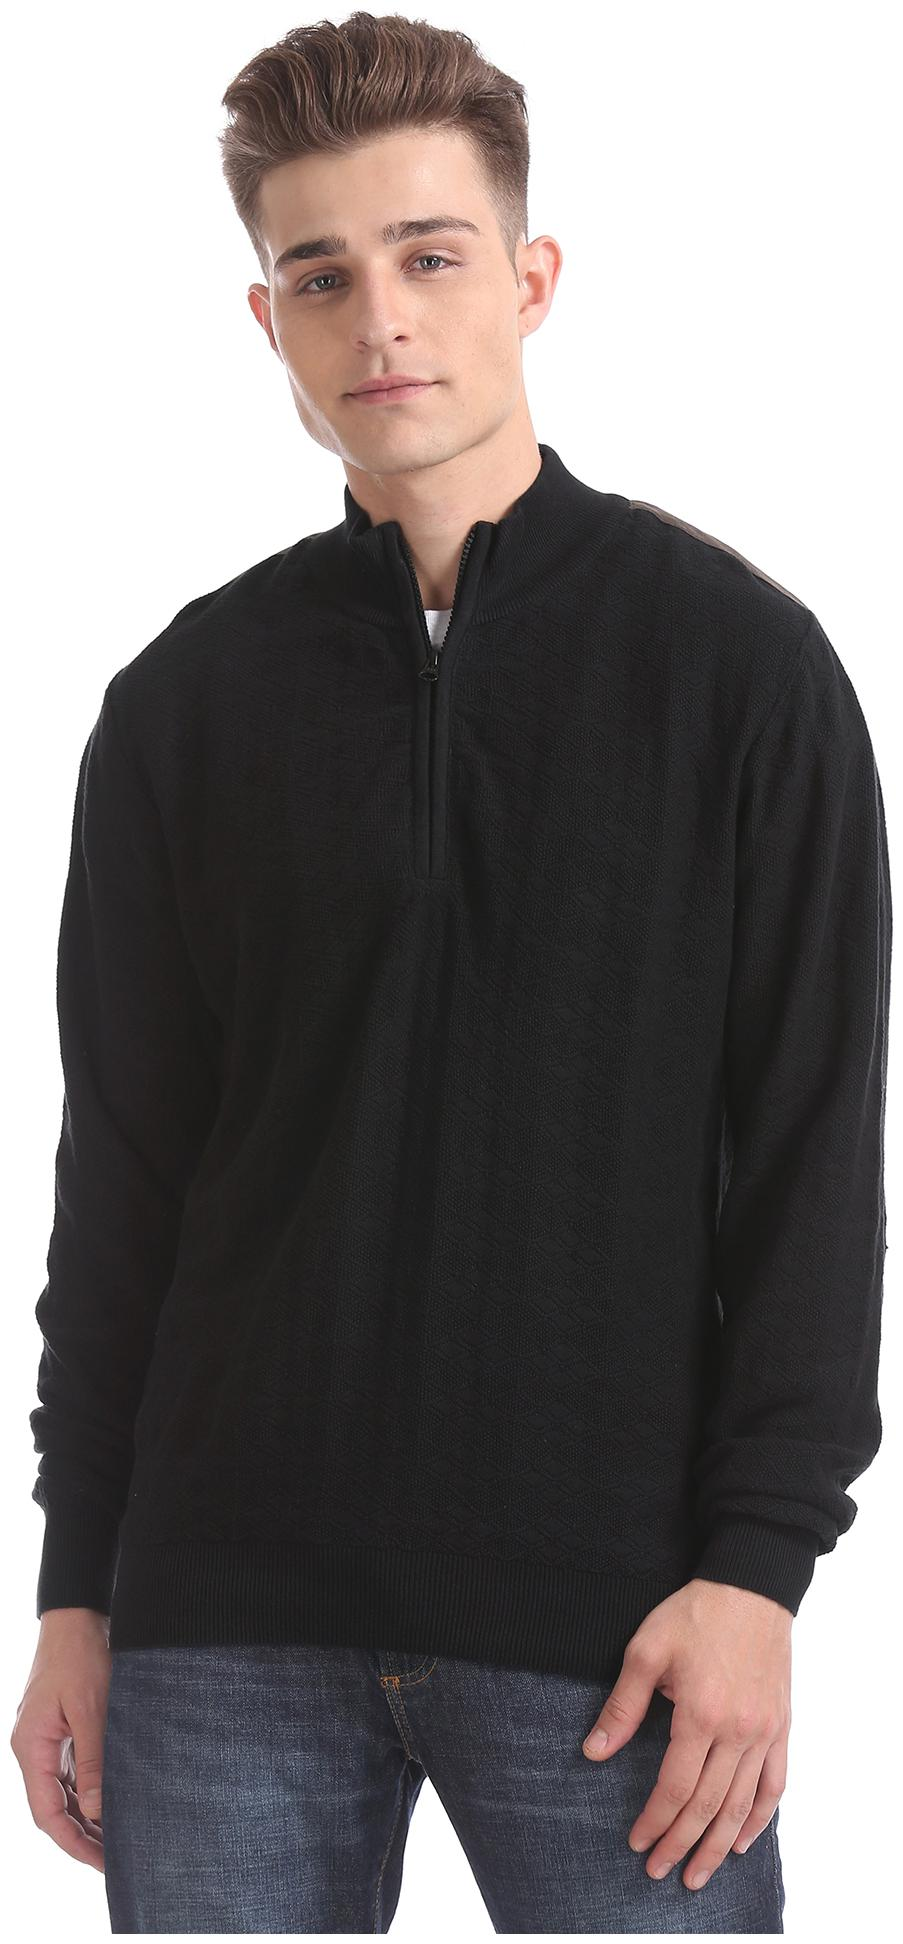 Men Cotton Full Sleeves Sweater ,Pack Of Pack Of 1